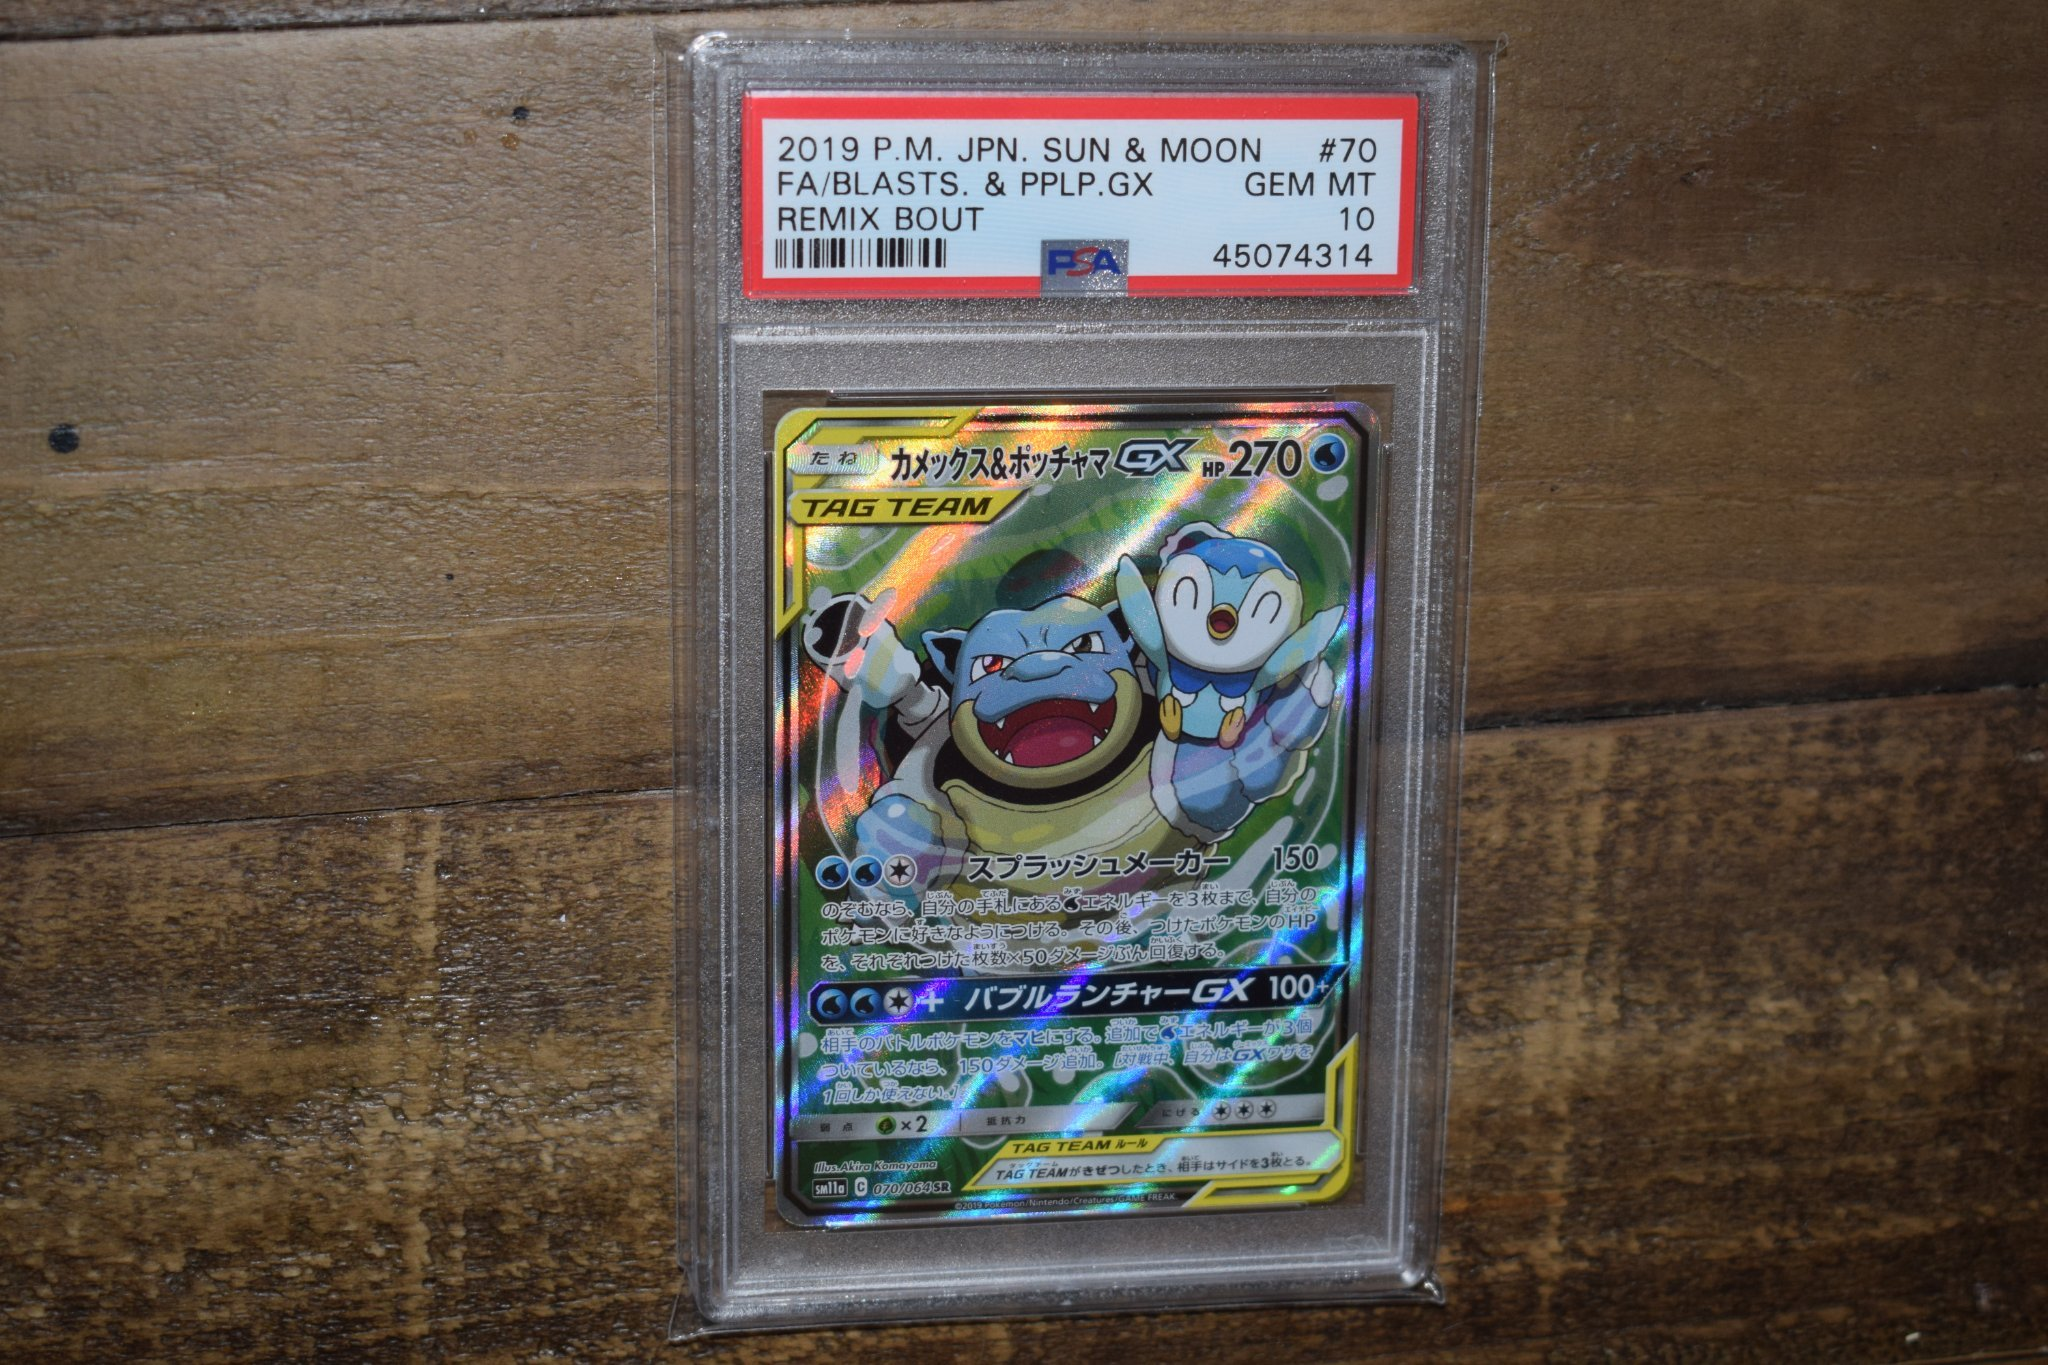 Blastoise Piplup GX Tag Team PSA 10 GEM MINT Pokemon Secret Rare Alternate Art